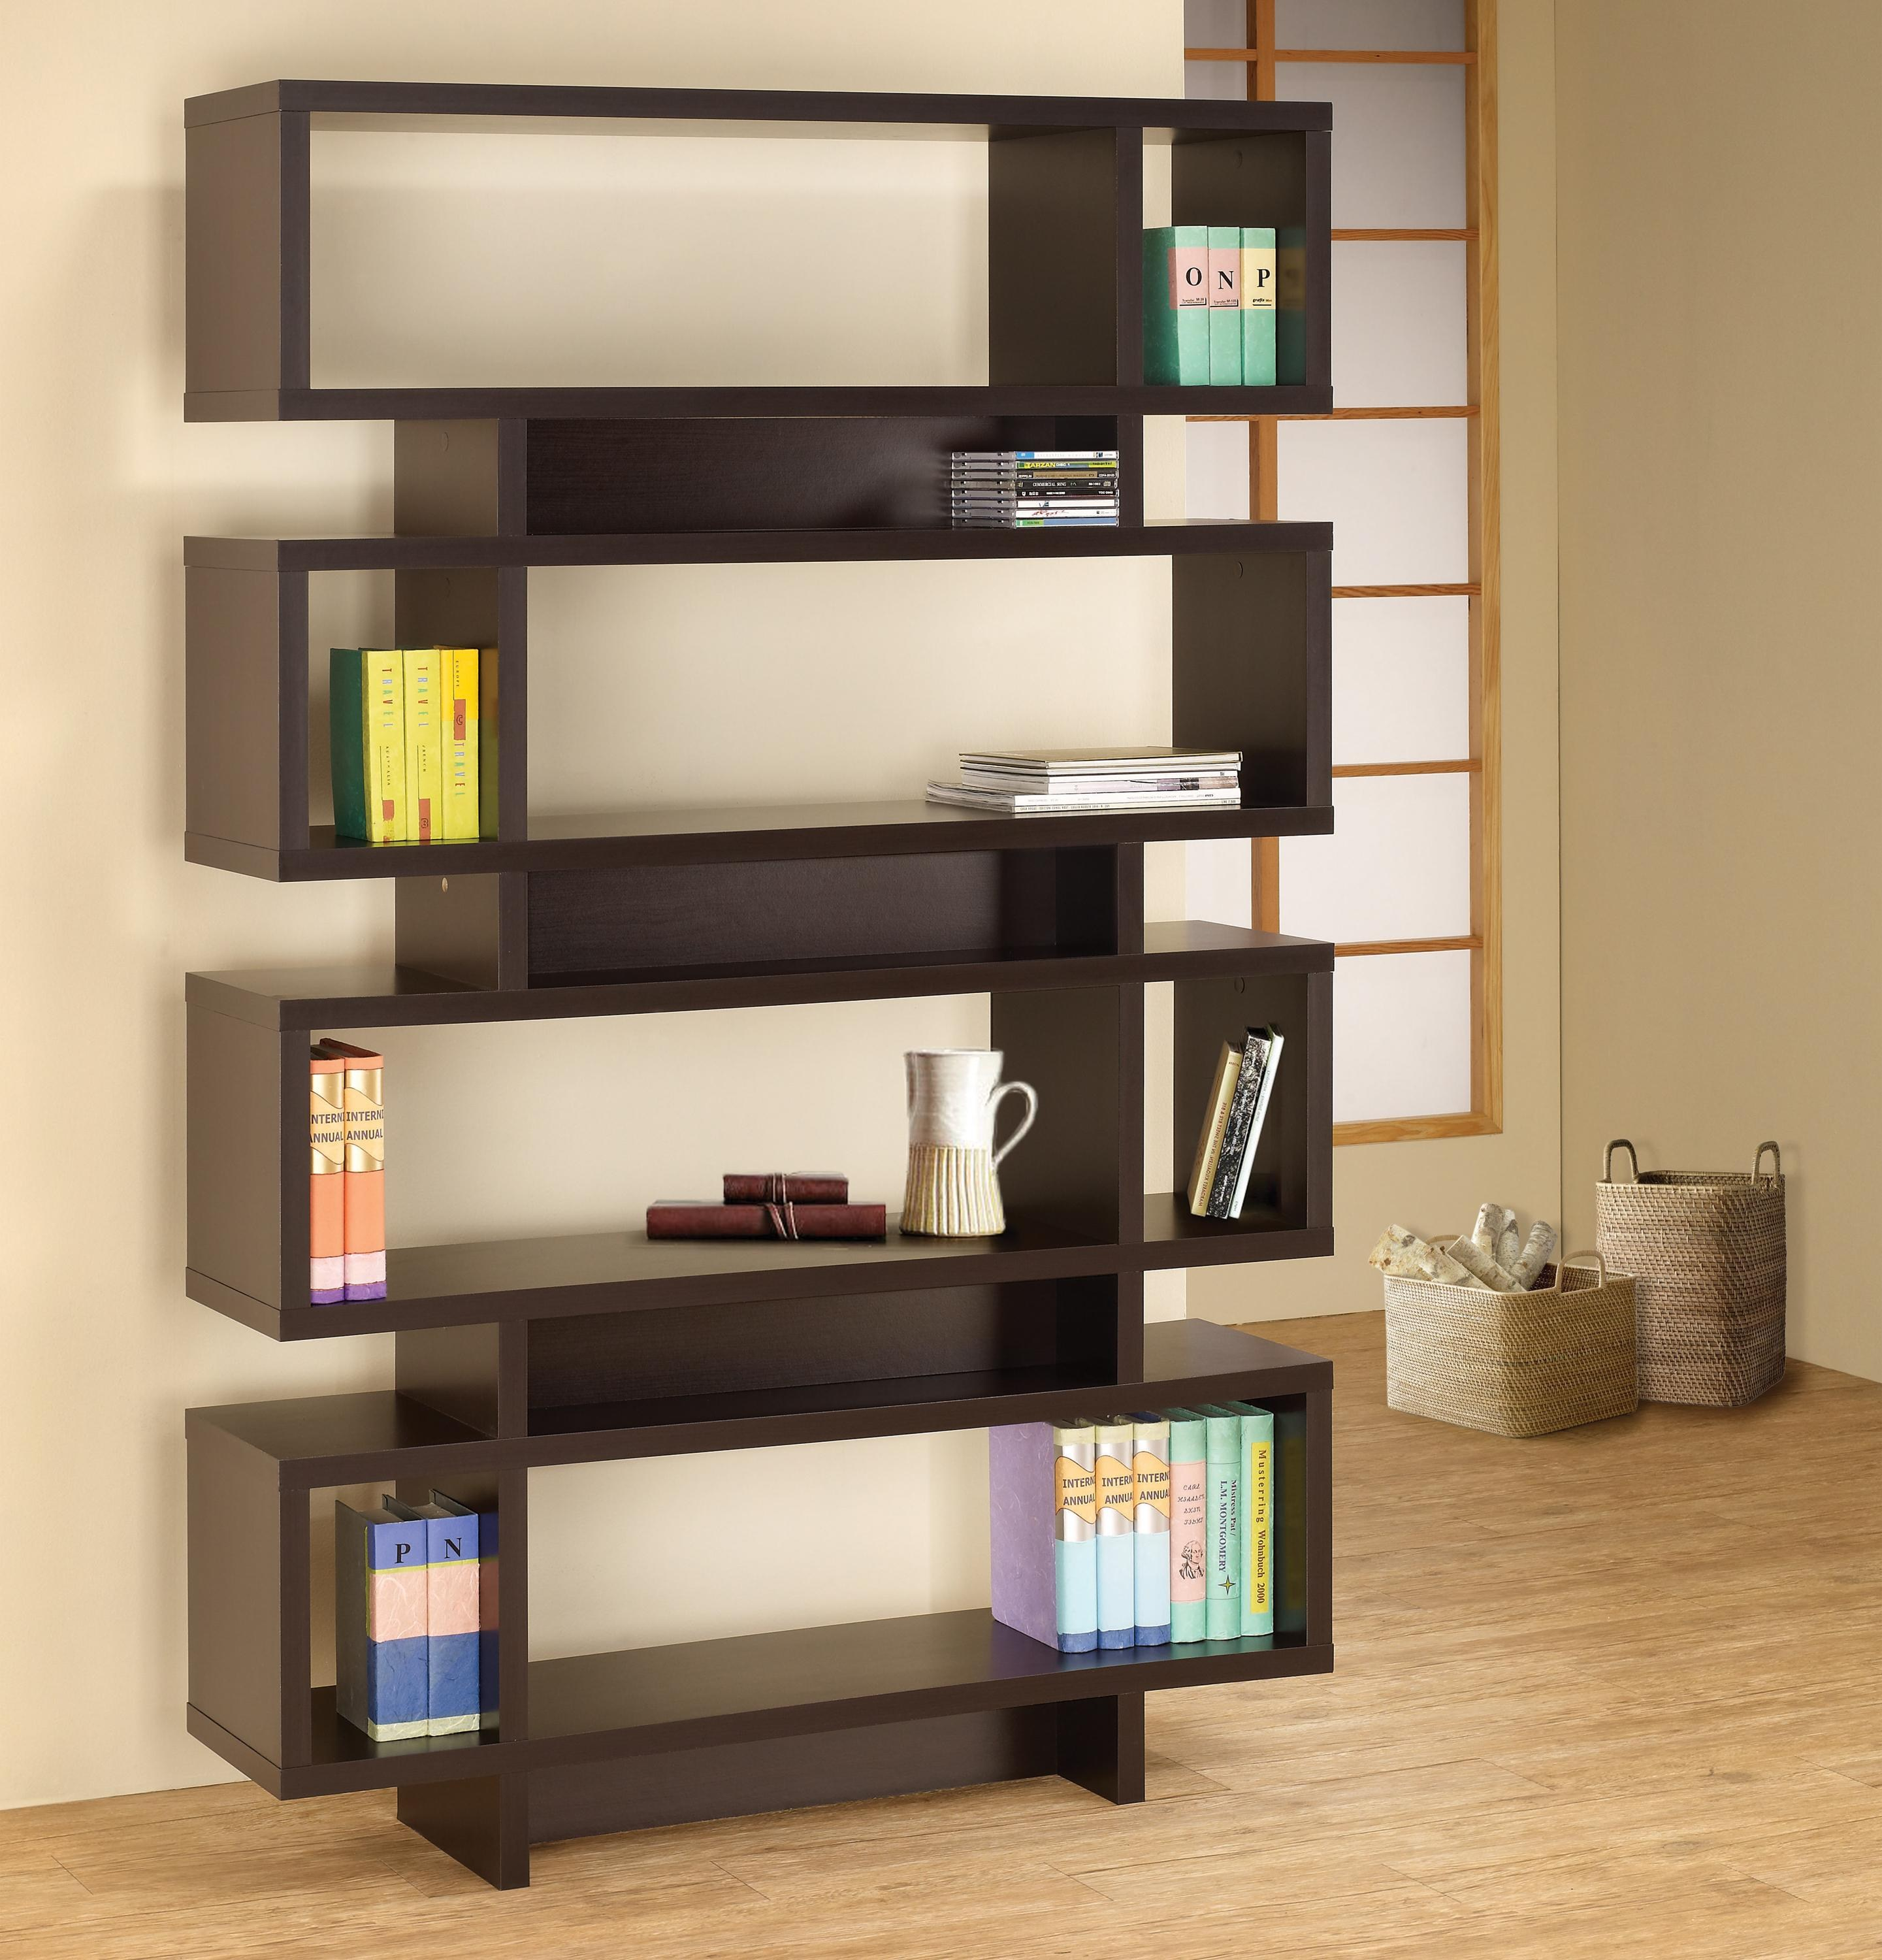 Organize your books with book cases